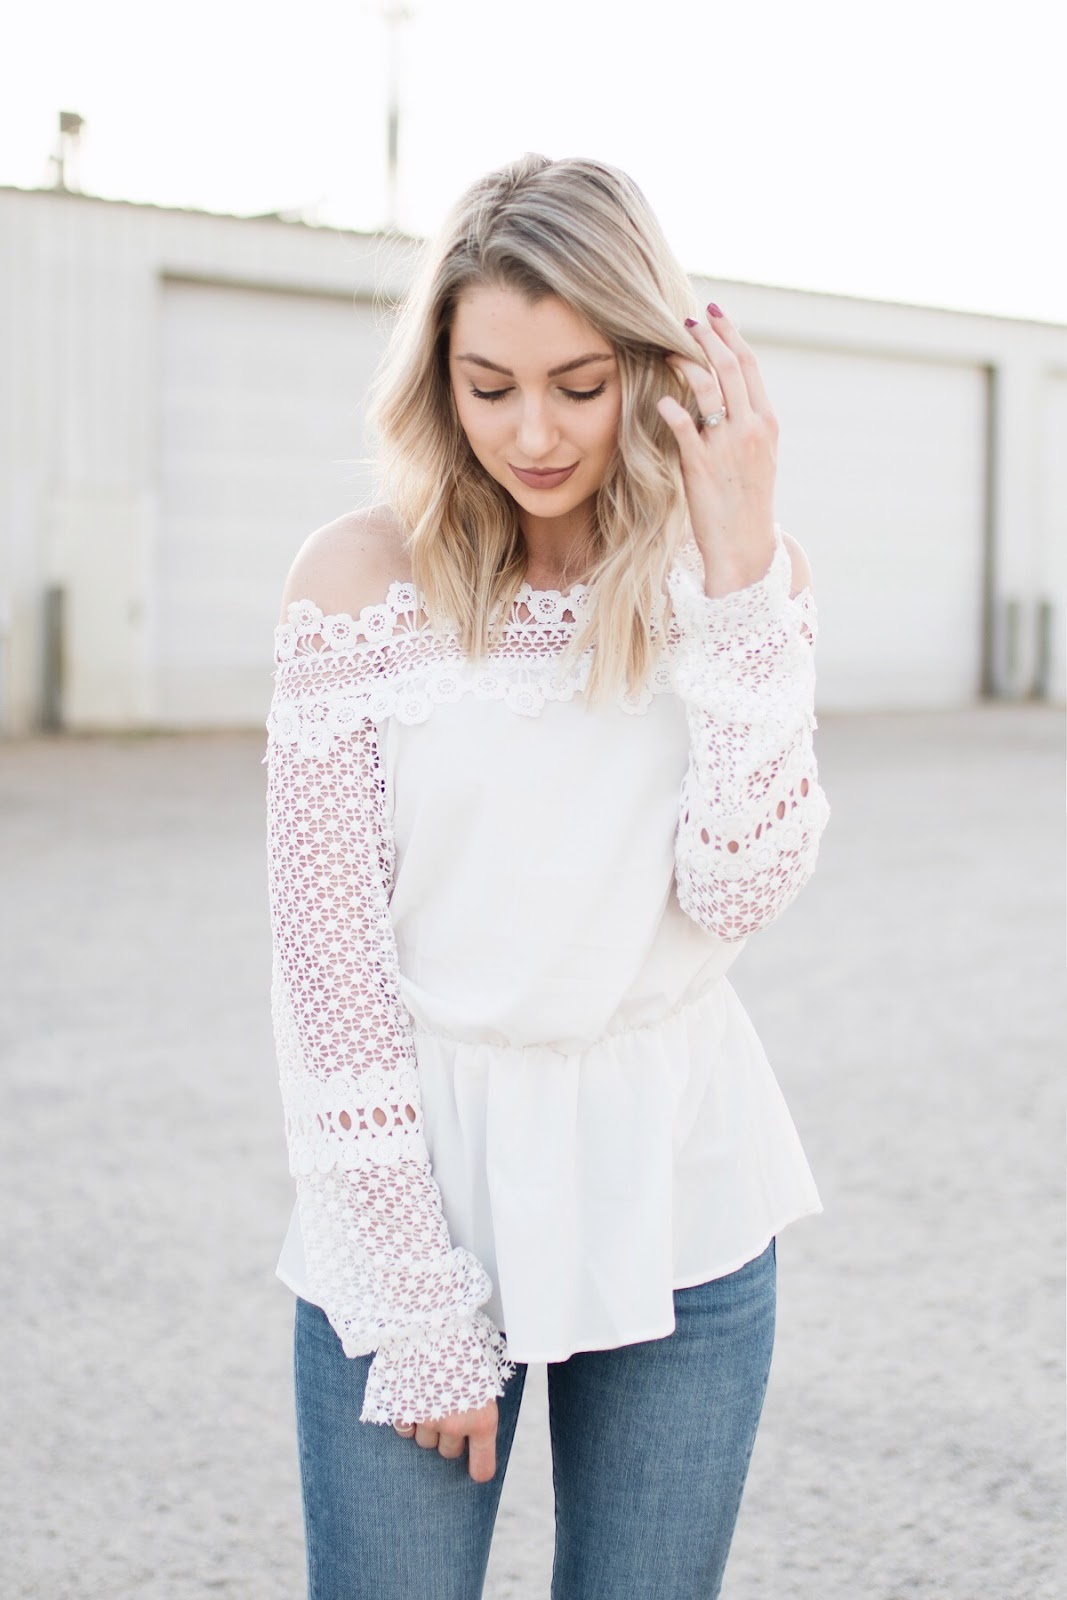 lace off-the-shoulder top for spring